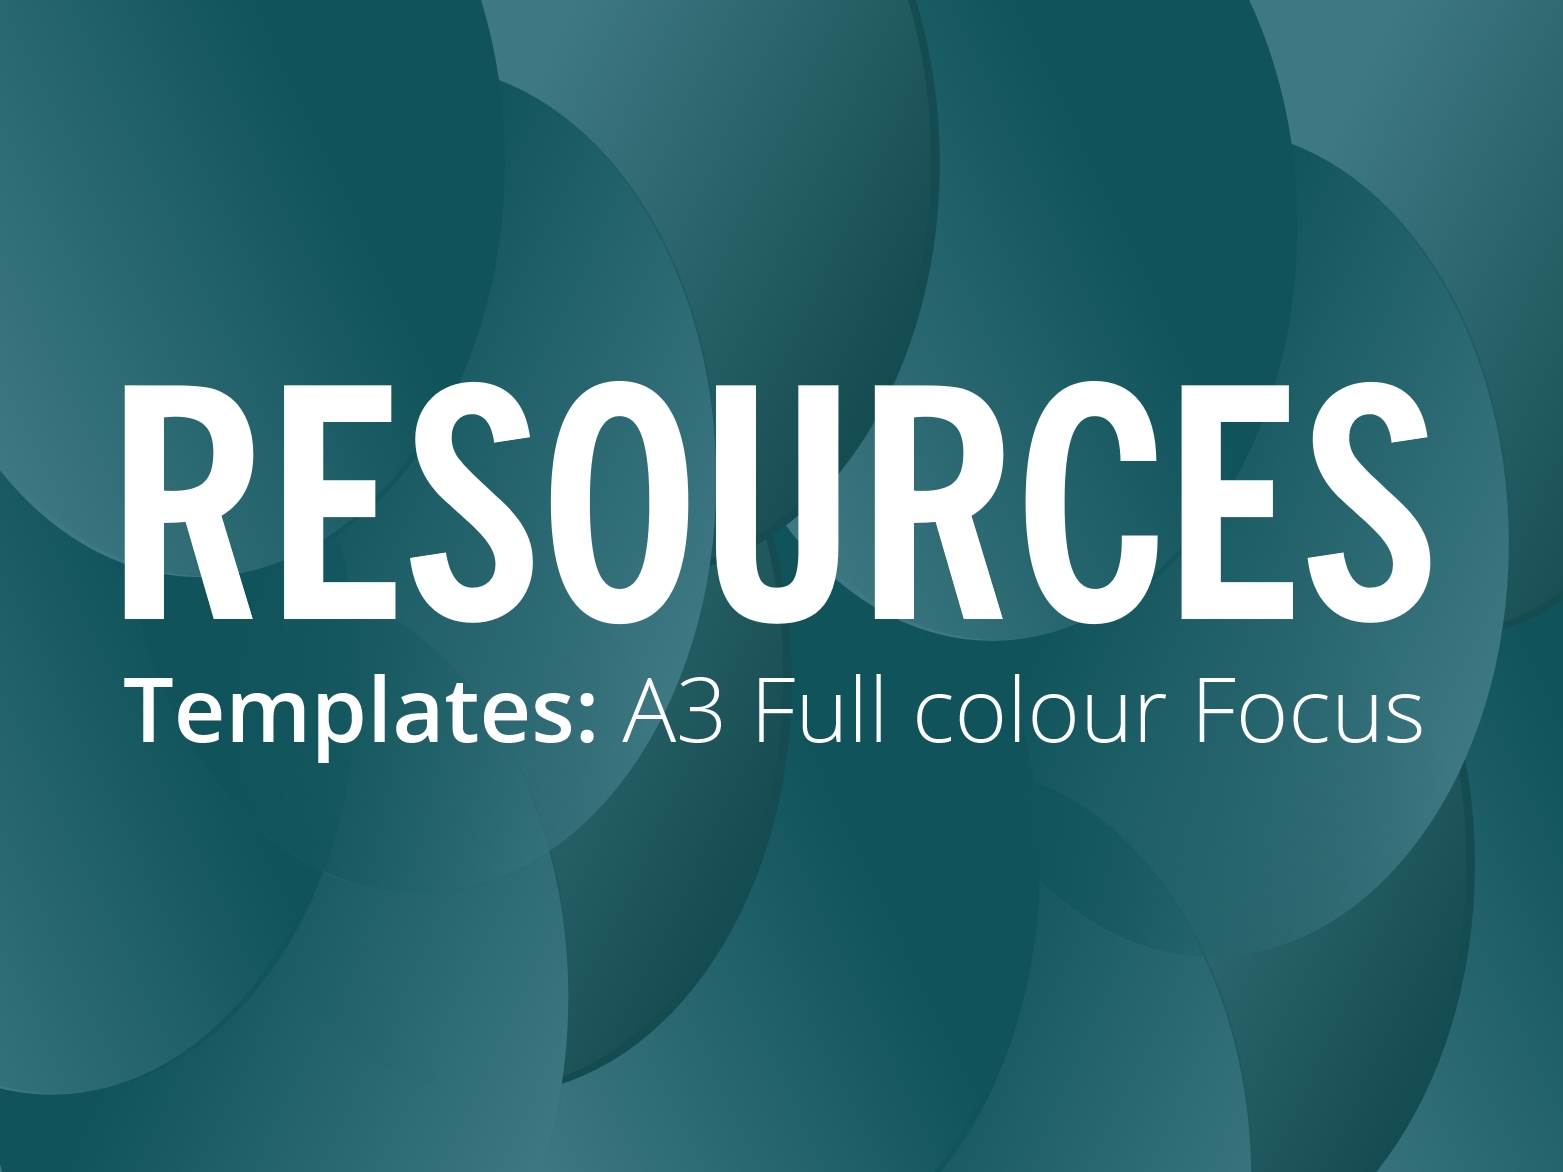 RESOURCES: Fresh Focus for August